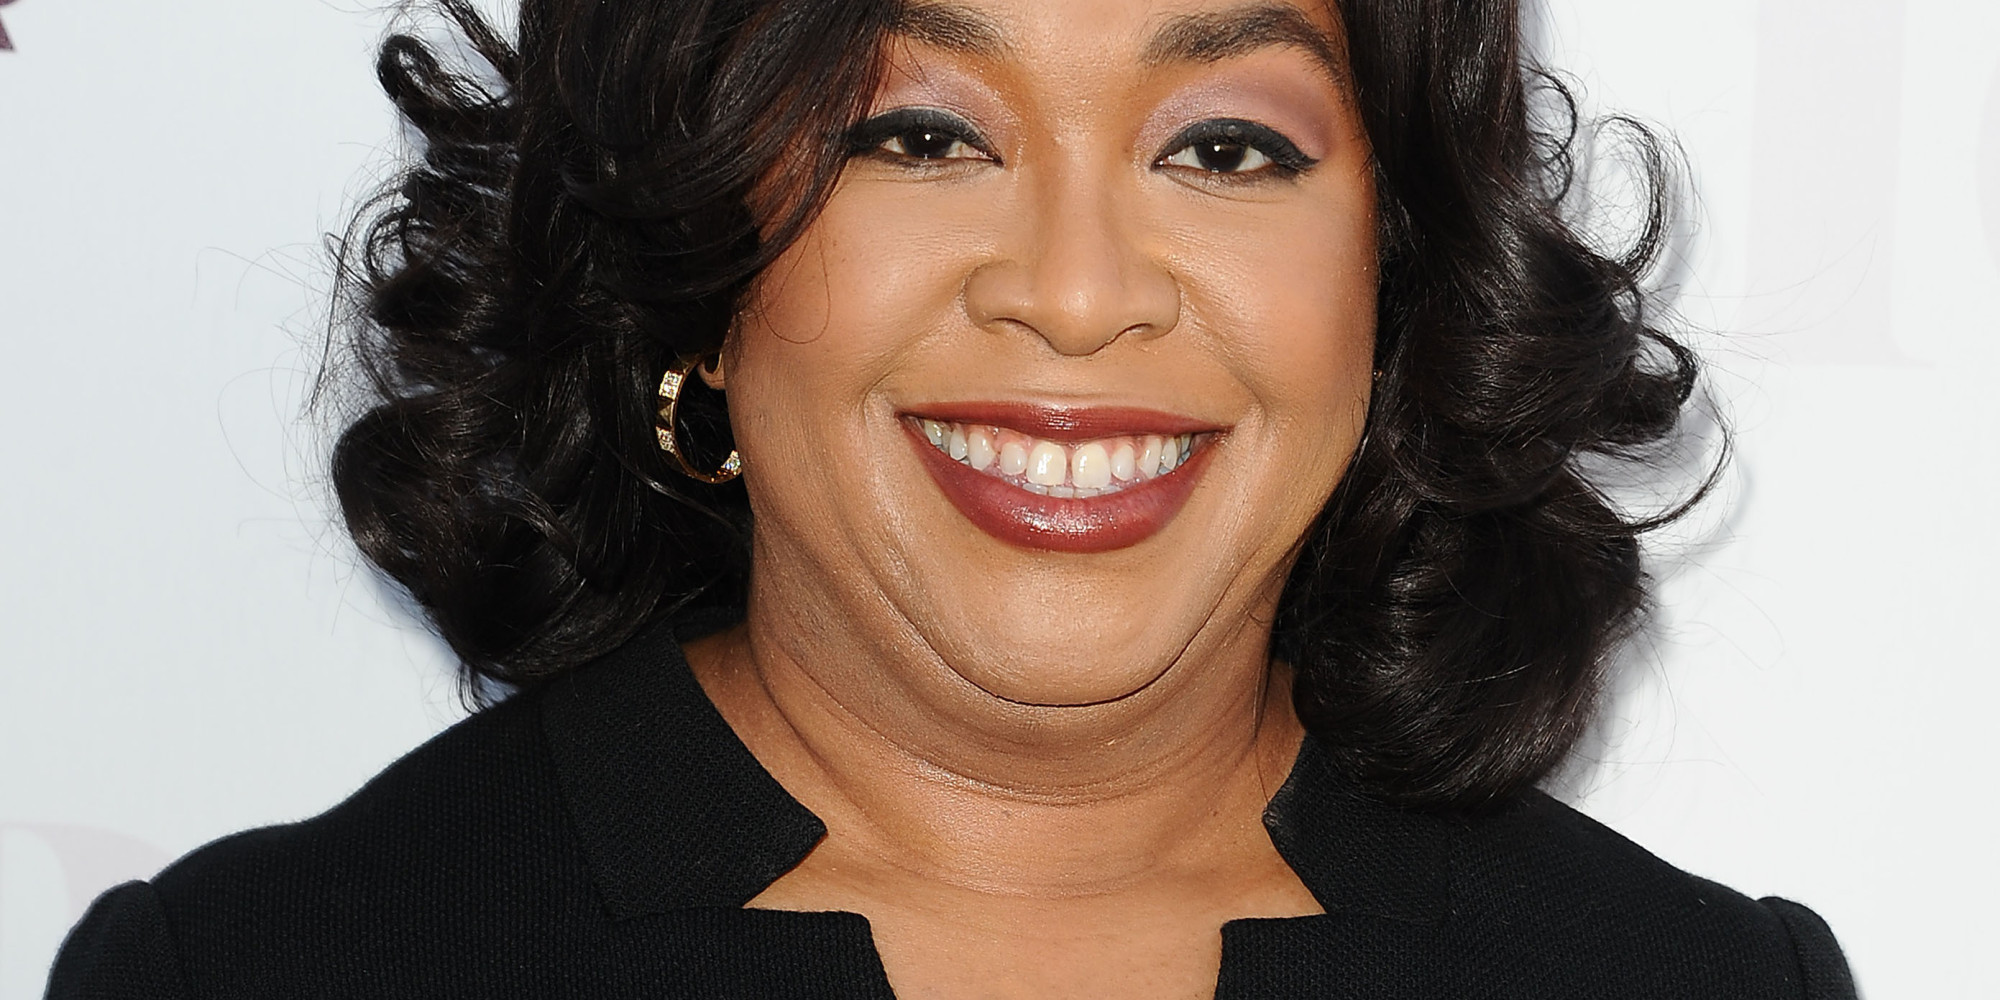 This Is What The Next Shonda Rhimes Show Could Be About ...